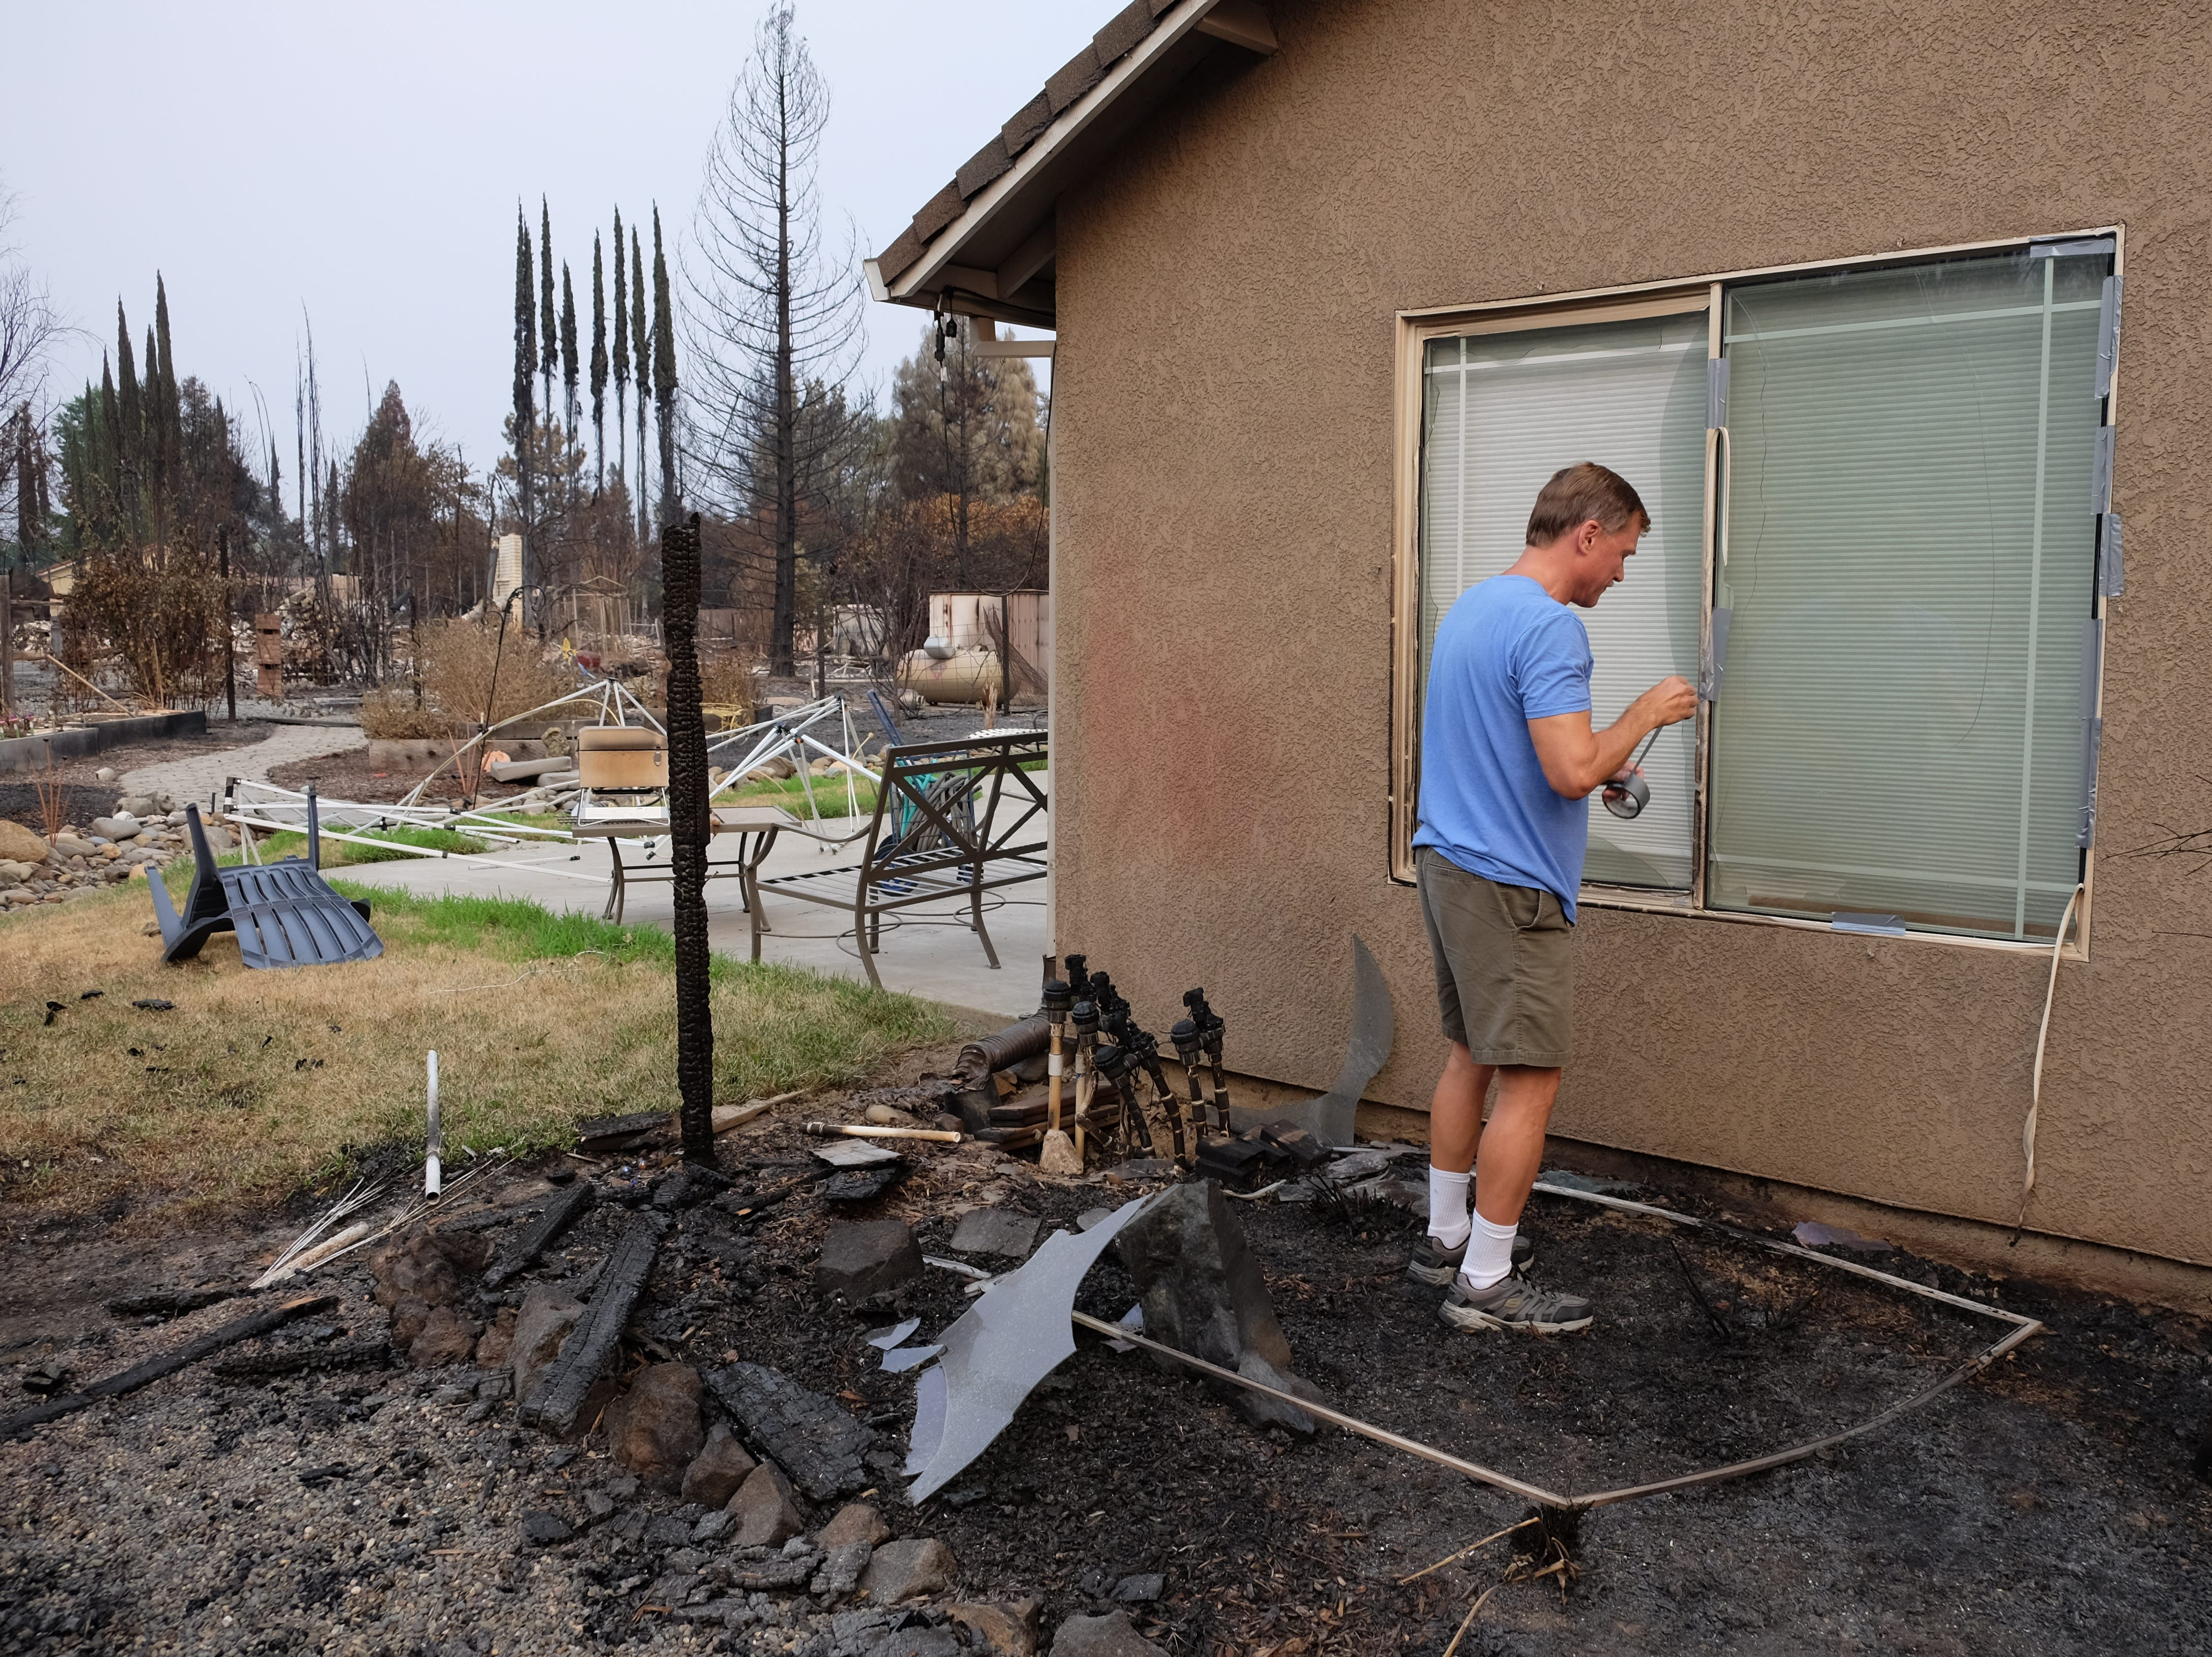 Bill Robinson tapes broken glass at their Redding home which avoided major damage from the Carr Fire. Many homes in their neighborhood were burned to the ground.